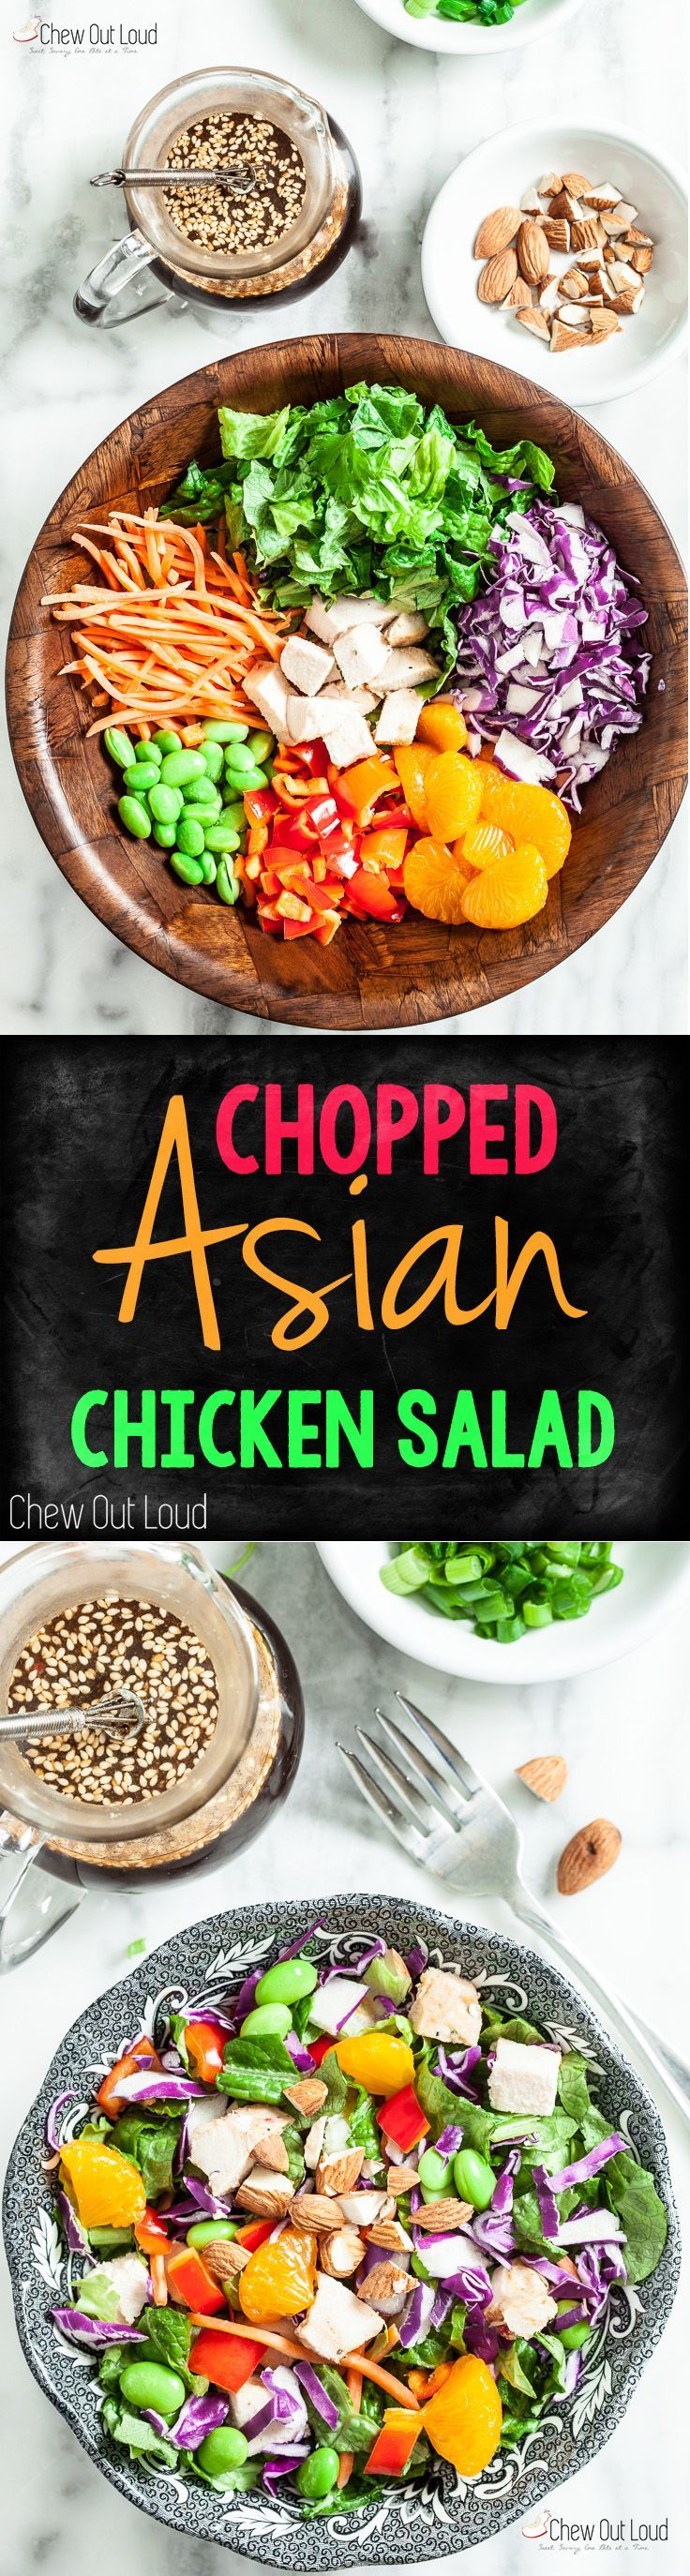 Chopped Asian Chicken Salad with Sesame Ginger Dressing. This Dressing is Amazing and goes well with everything.  #asian #chinese #chicken #salad